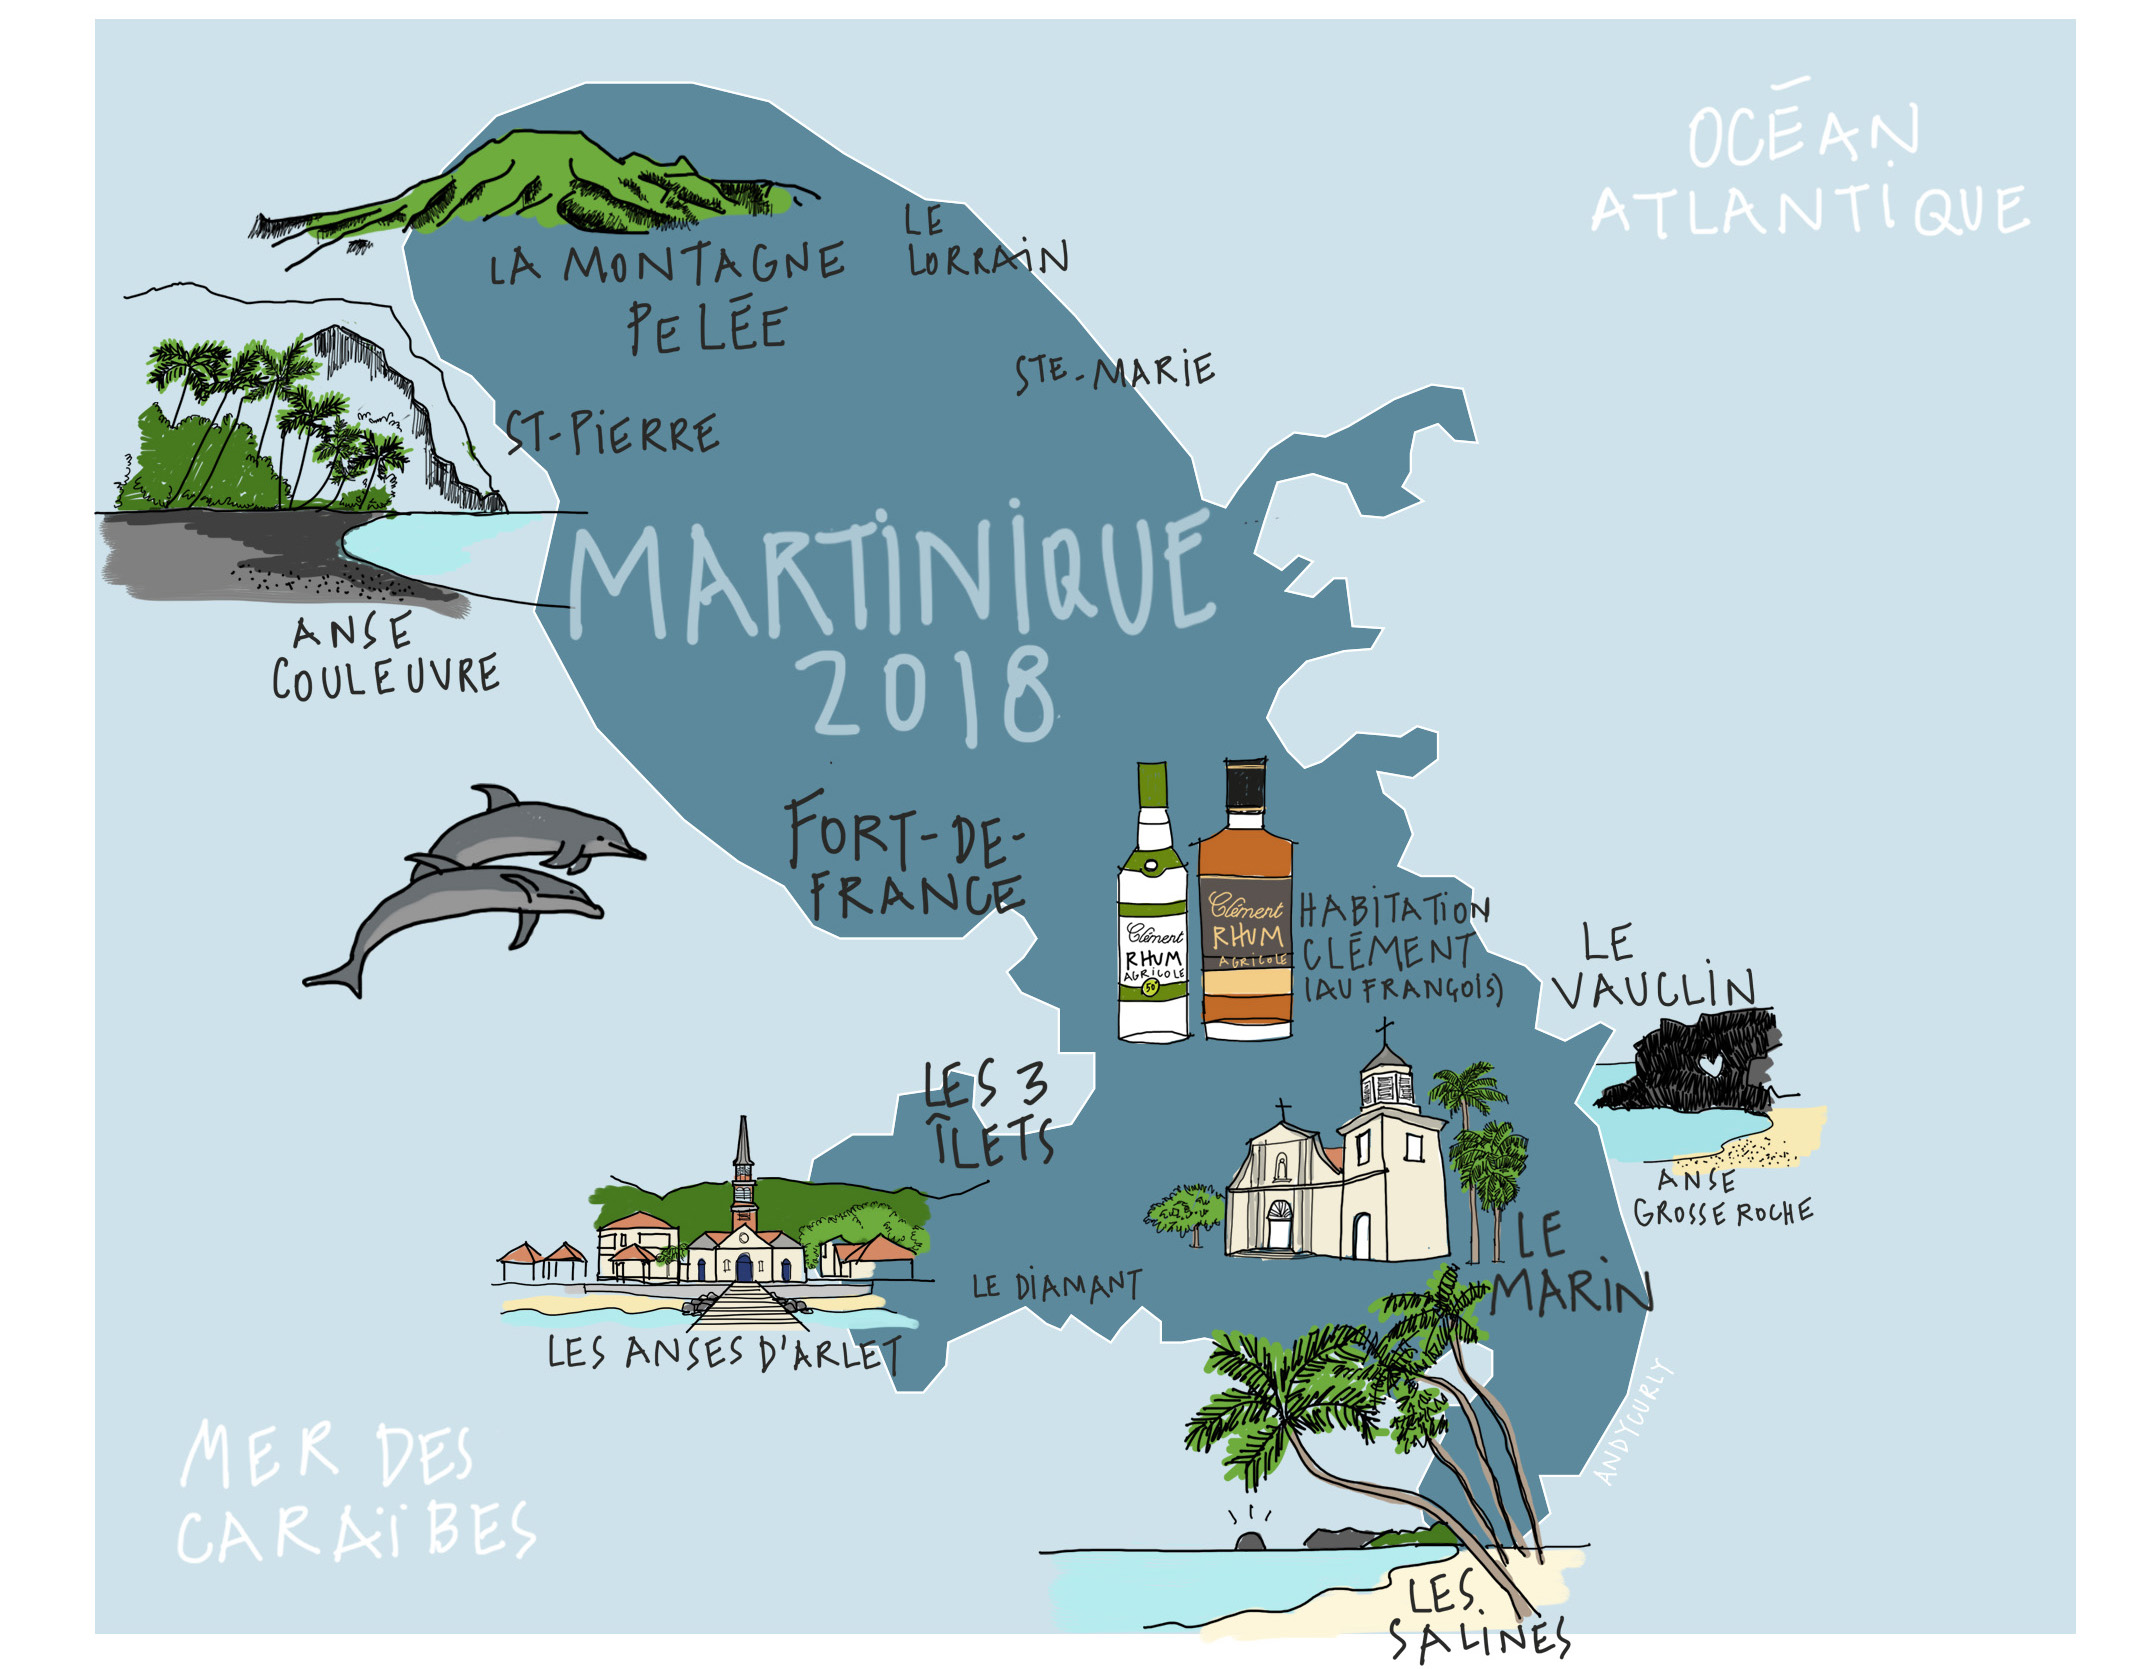 carte mawtinique